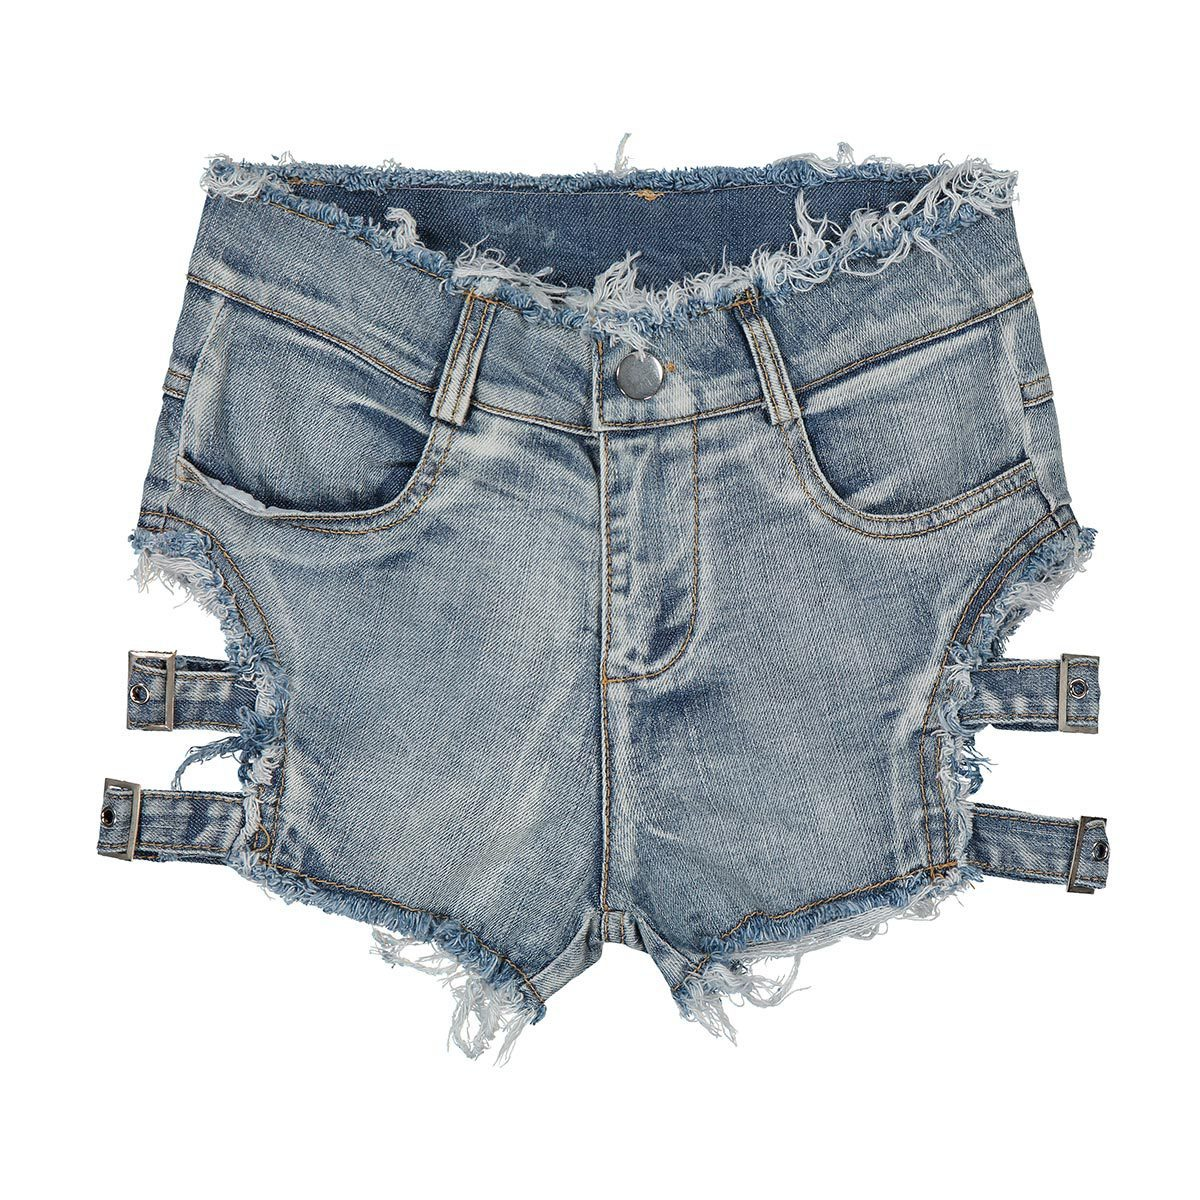 1 3Color Number New Pattern Summer Sexy Nightclub Evening Show Suit dress High Waist Cowboy Shorts Letter Jeans Holes Thin